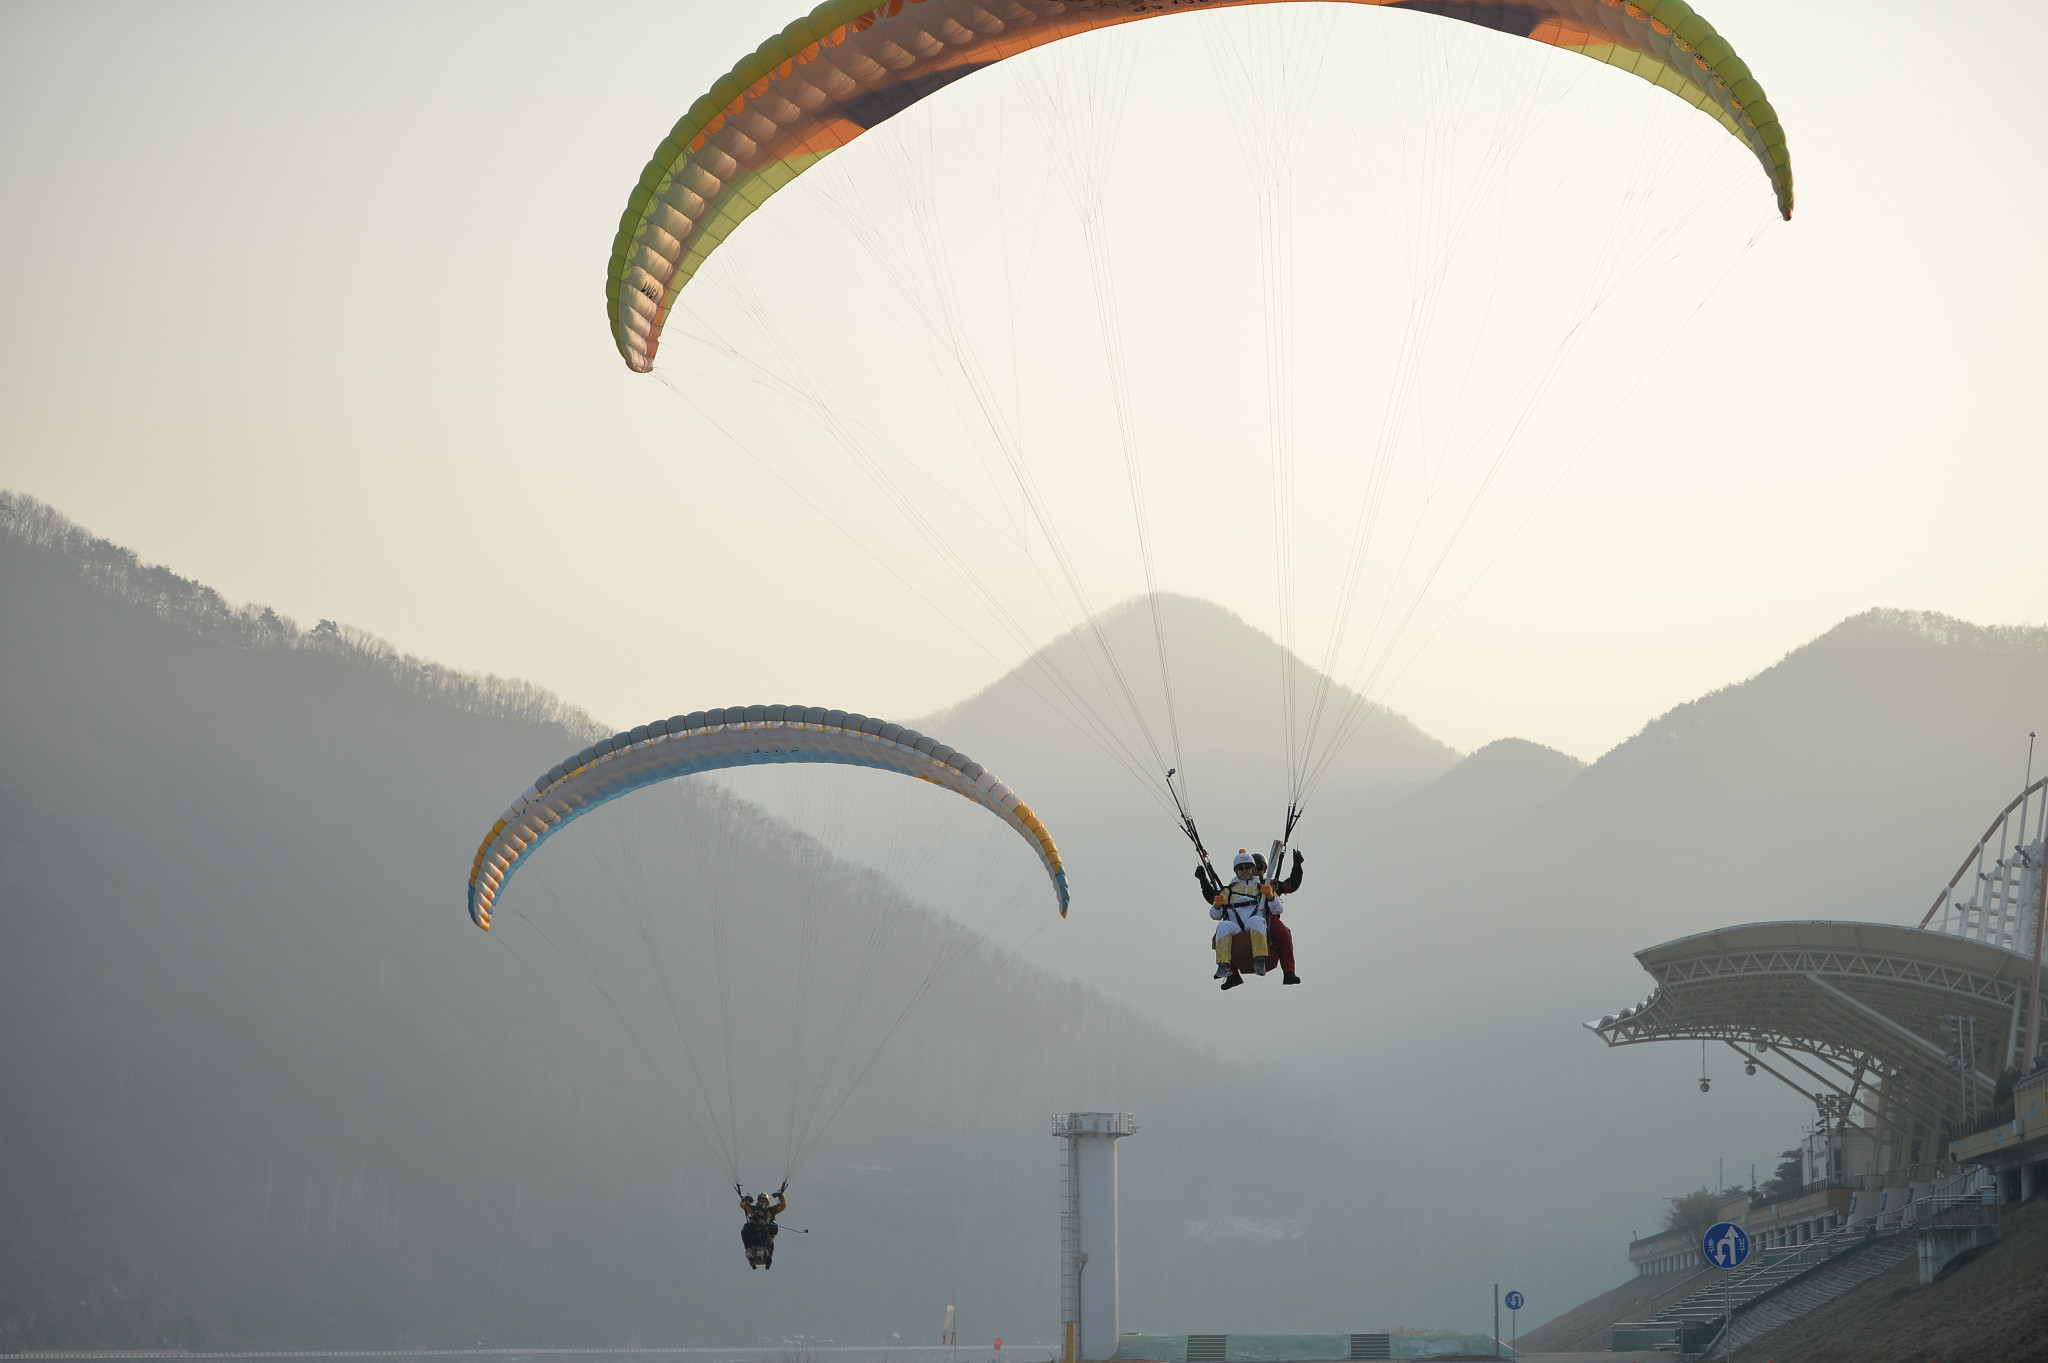 The Torch has been paragliding ©Pyeongchang 2018